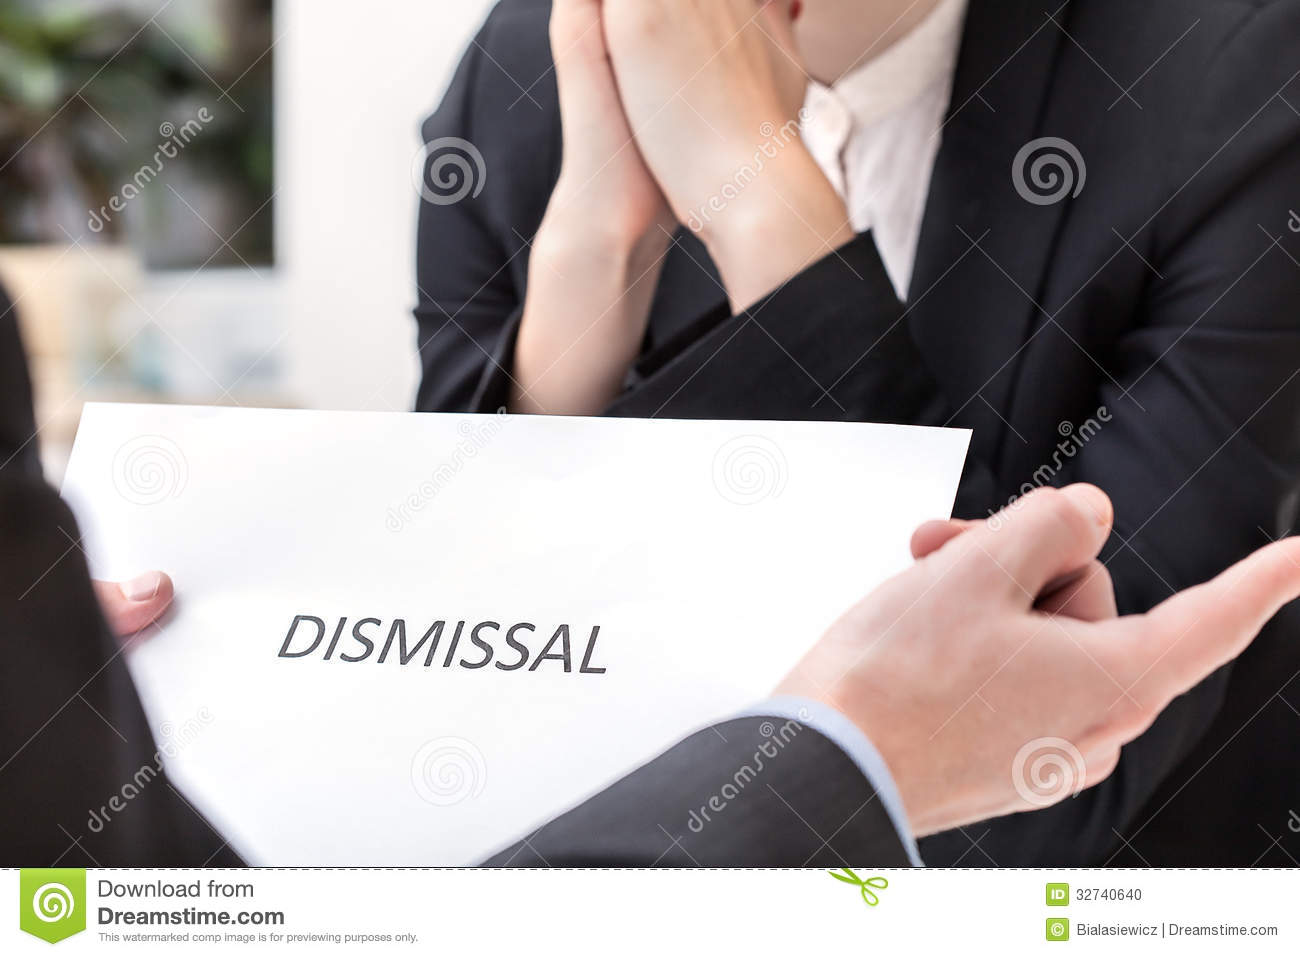 how to appeal a dismissal from work